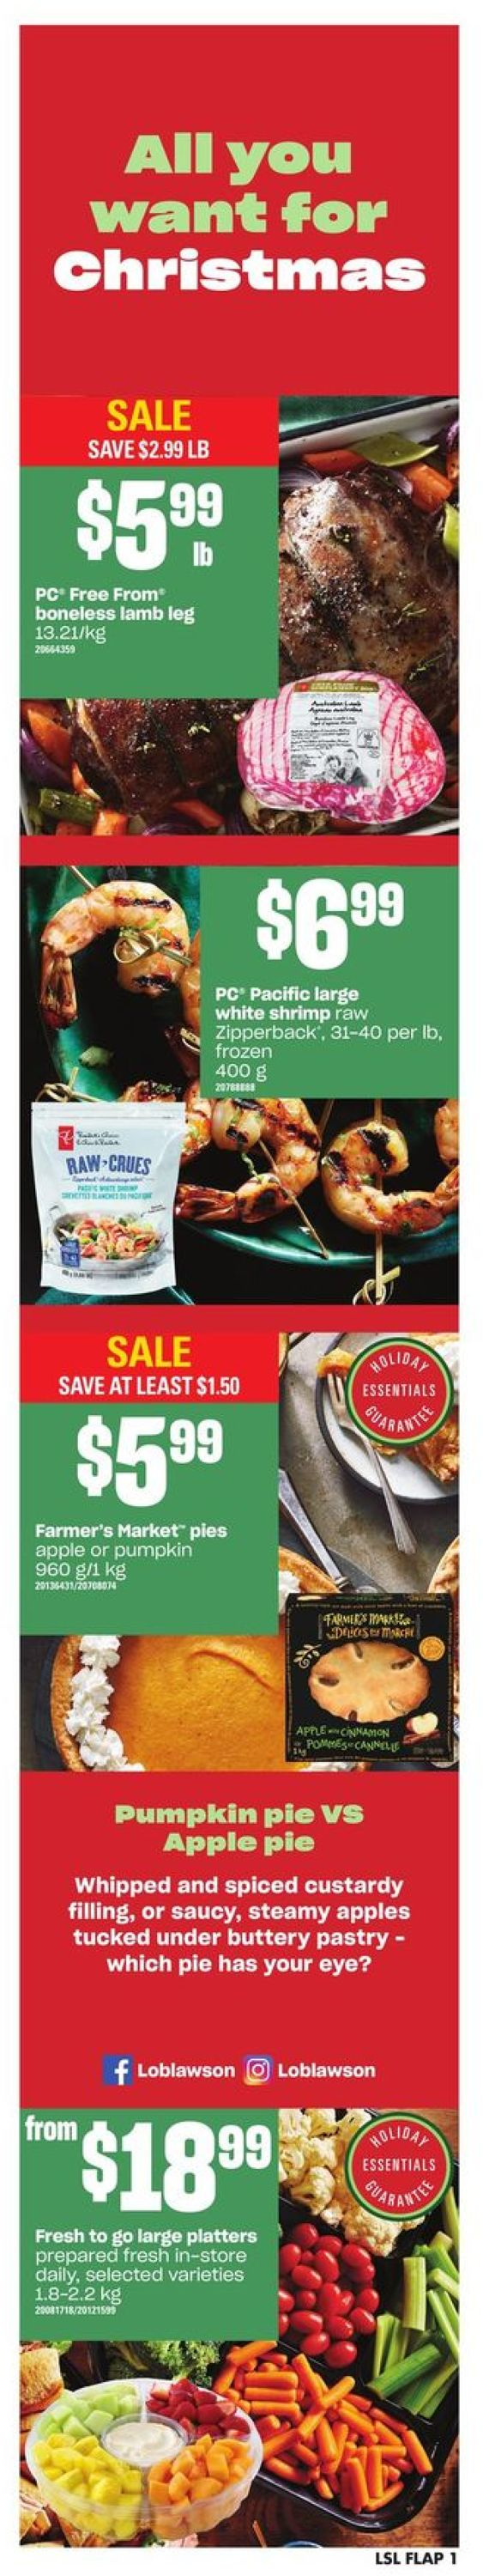 Loblaws Christmas Flyer 2019 Flyer - 12/19-12/24/2019